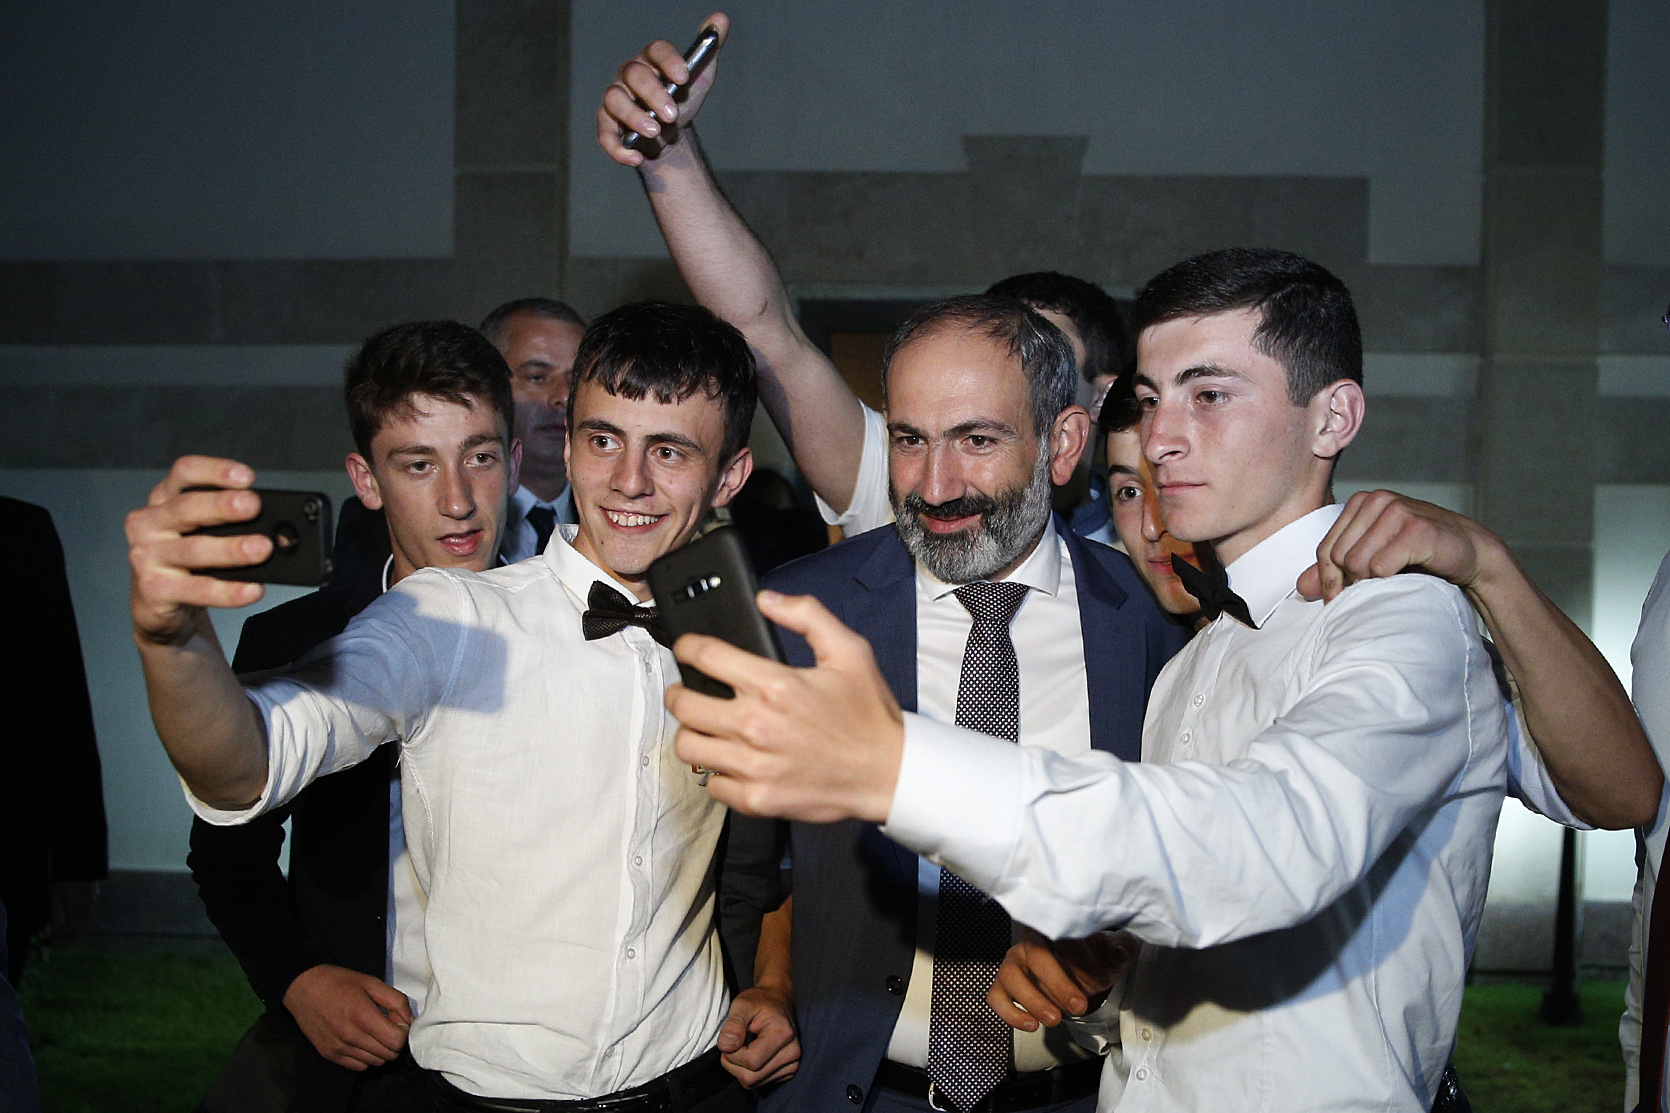 Armenian Minister Nikol Pashinyan invited more than 100 graduates from the border regions to his residence. (Photo: Armenian Prime Minister Press Service)